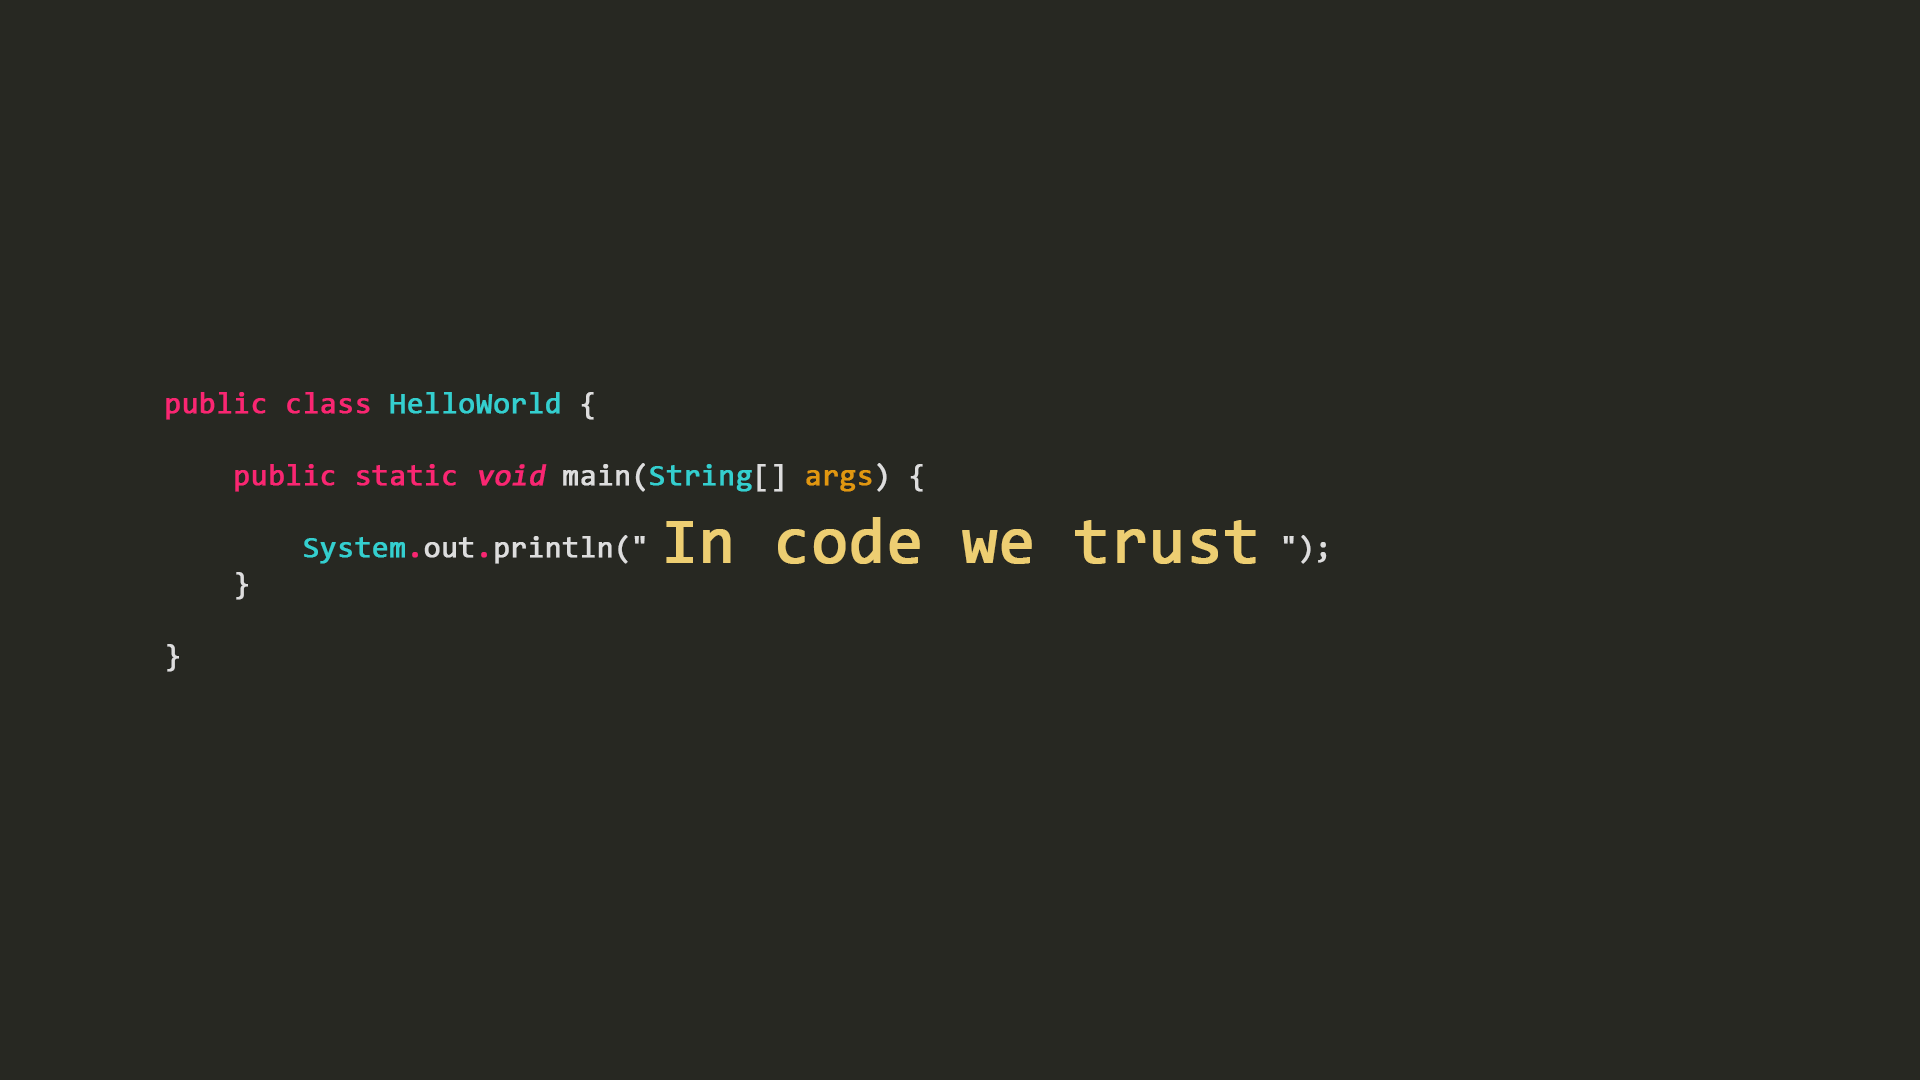 In code we trust [1920x1080] : wallpapers